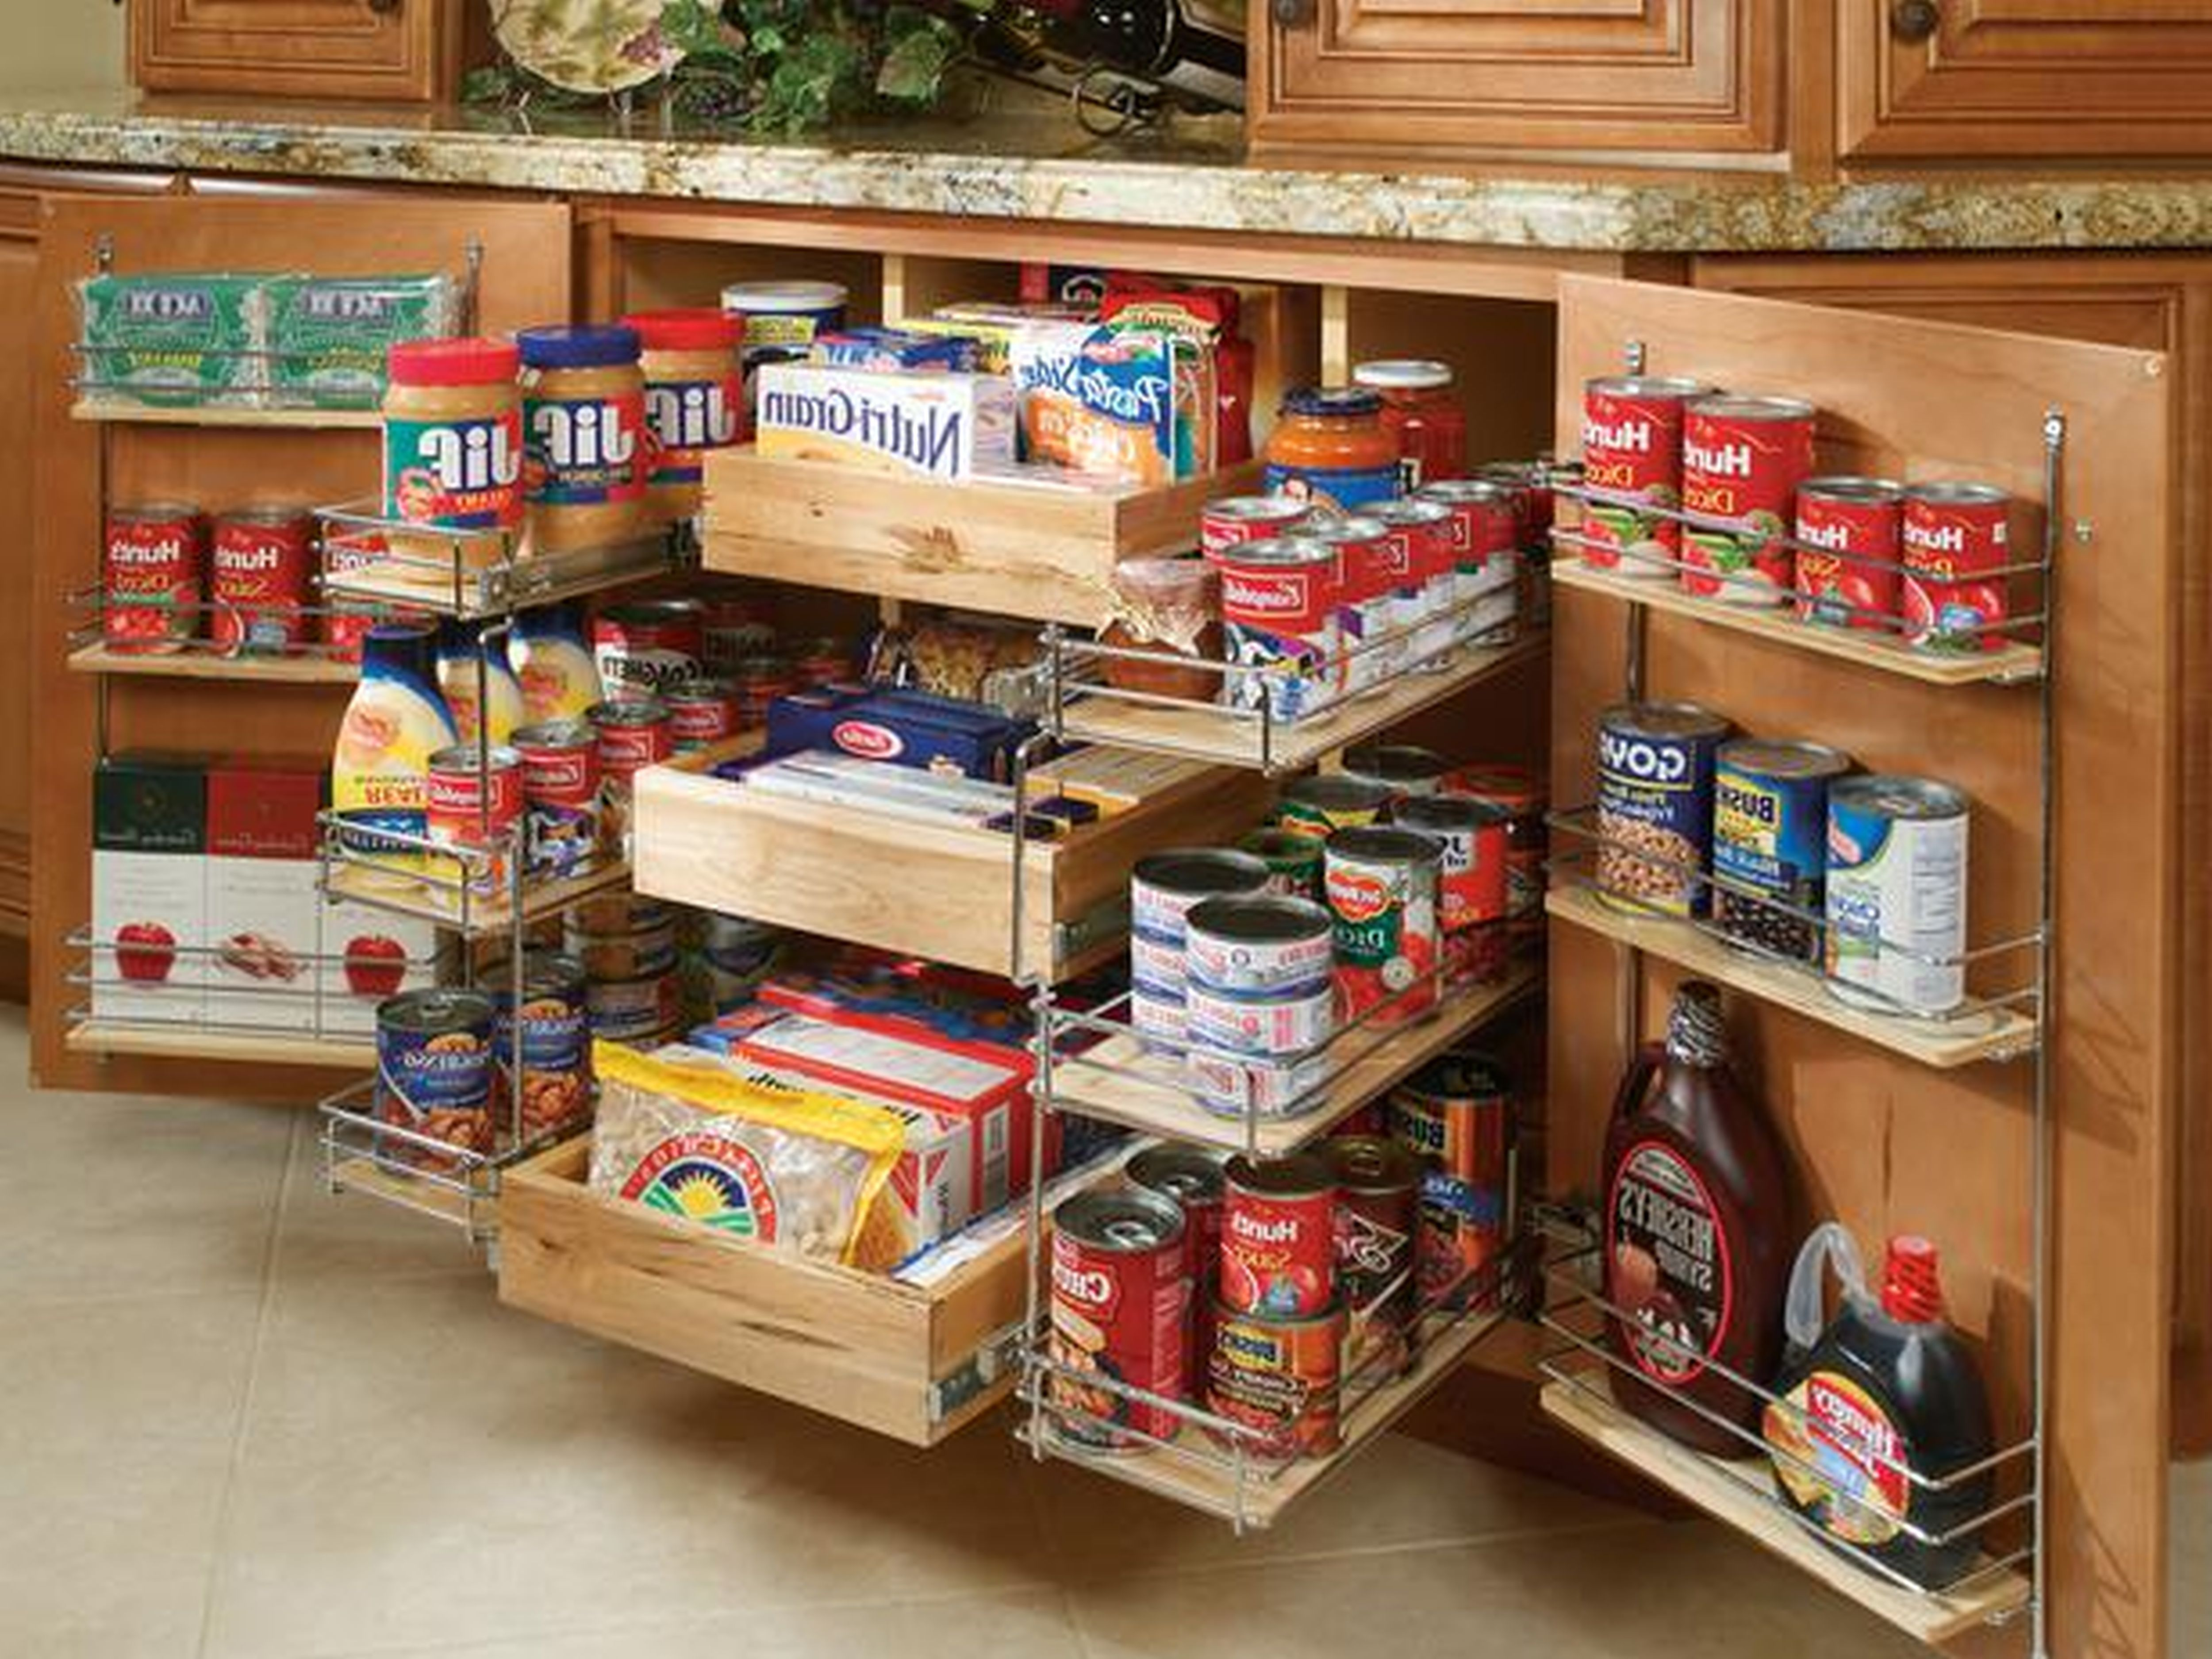 pantry shelves creative ideas for more inspiring pantry storage. Kitchen Storage Ideas Decorations Charming Wooden Feat Stainless Steel Drawers Spice Rack With Pull Out Pantry Shelves Creative For More Inspiring O